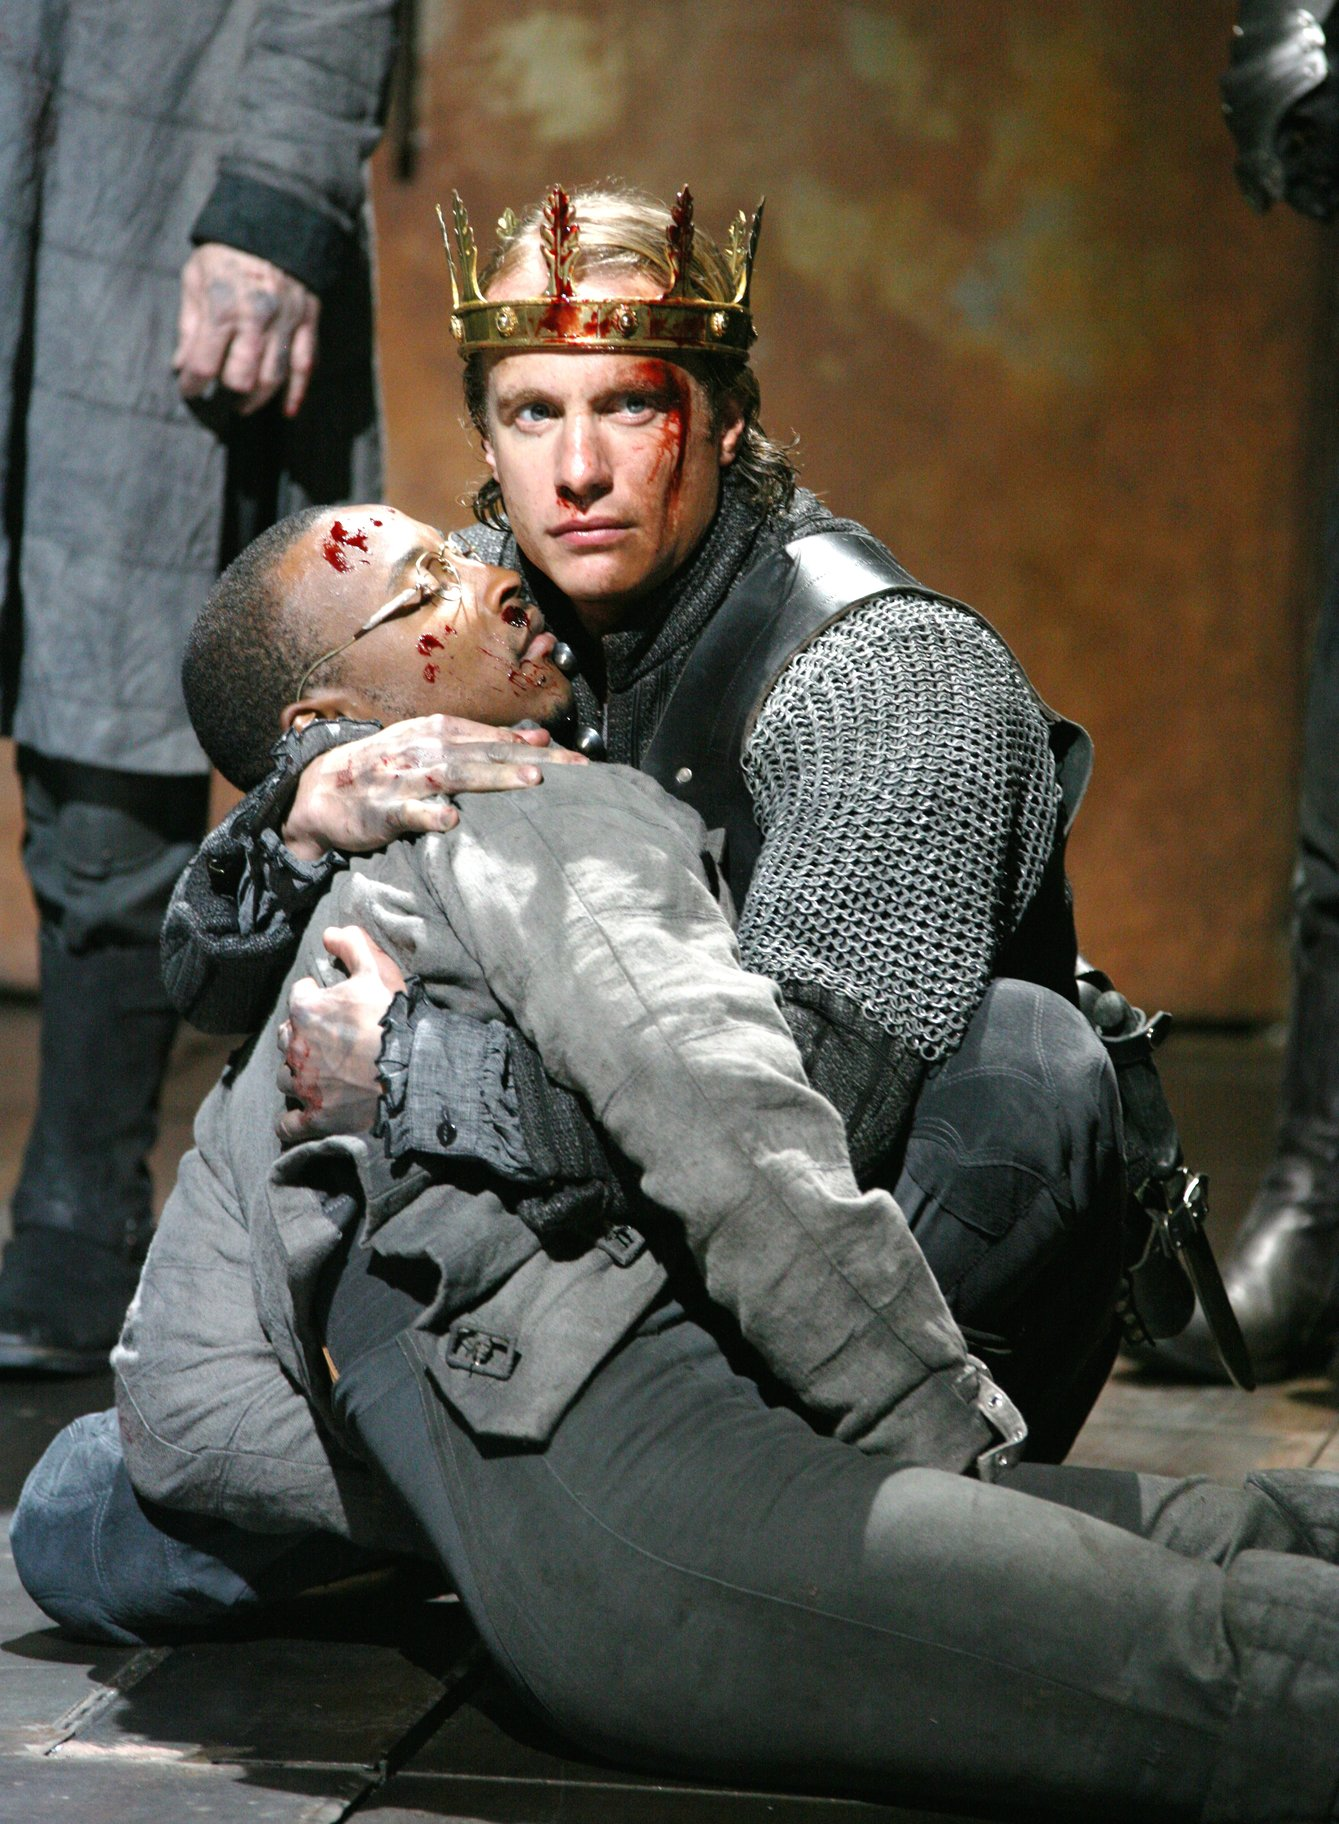 Henry clutches at the Boy, holding him as he dies, both covered in blood in the 2007 production of Henry V